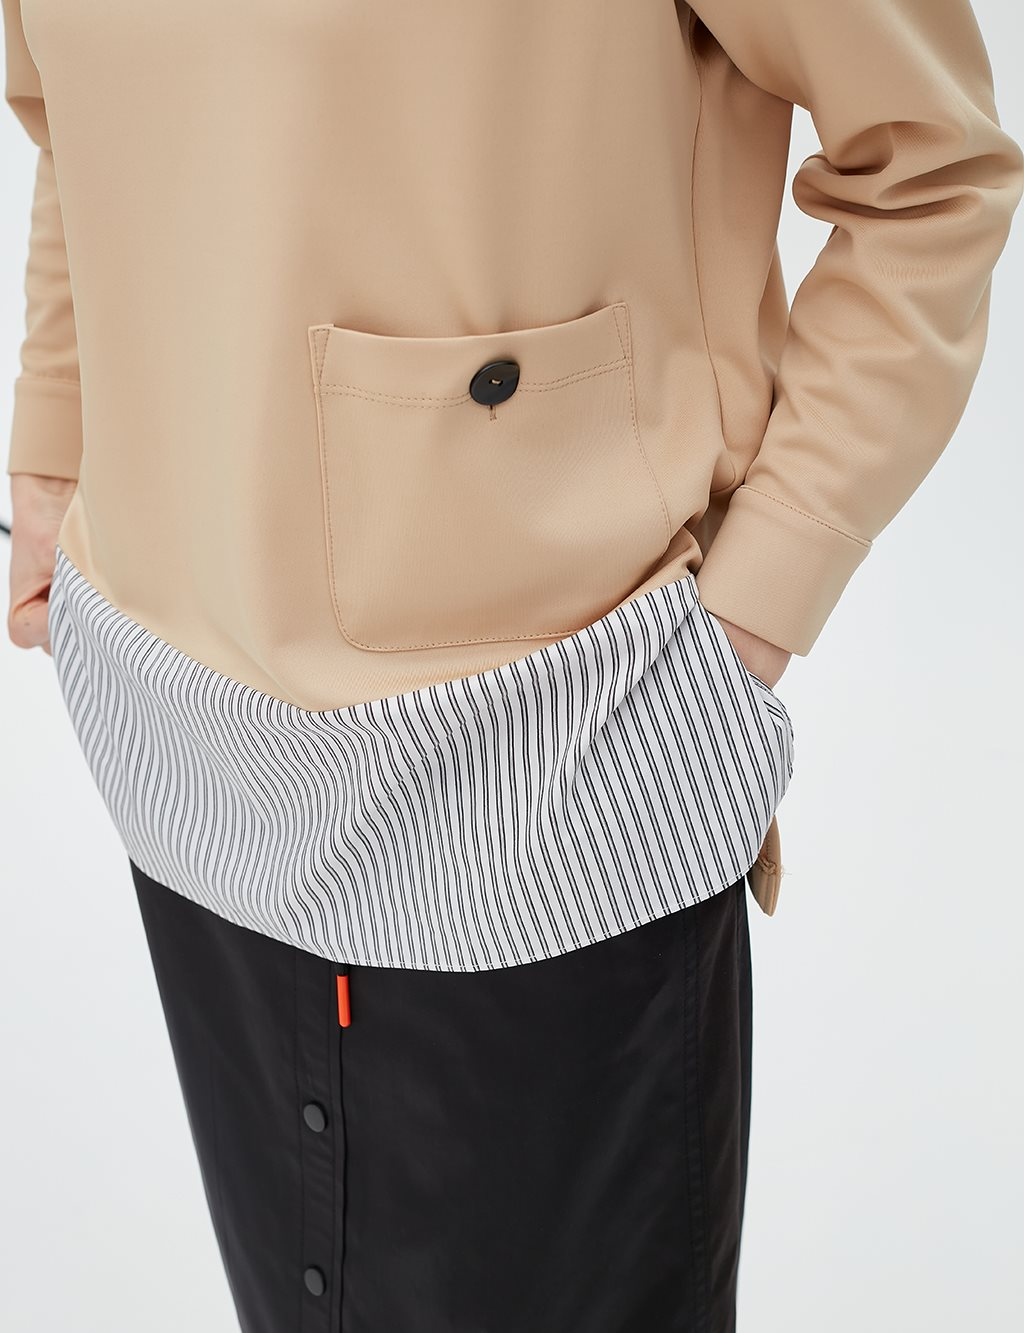 Back Collar Detailed Blouse B20 10021 Beige